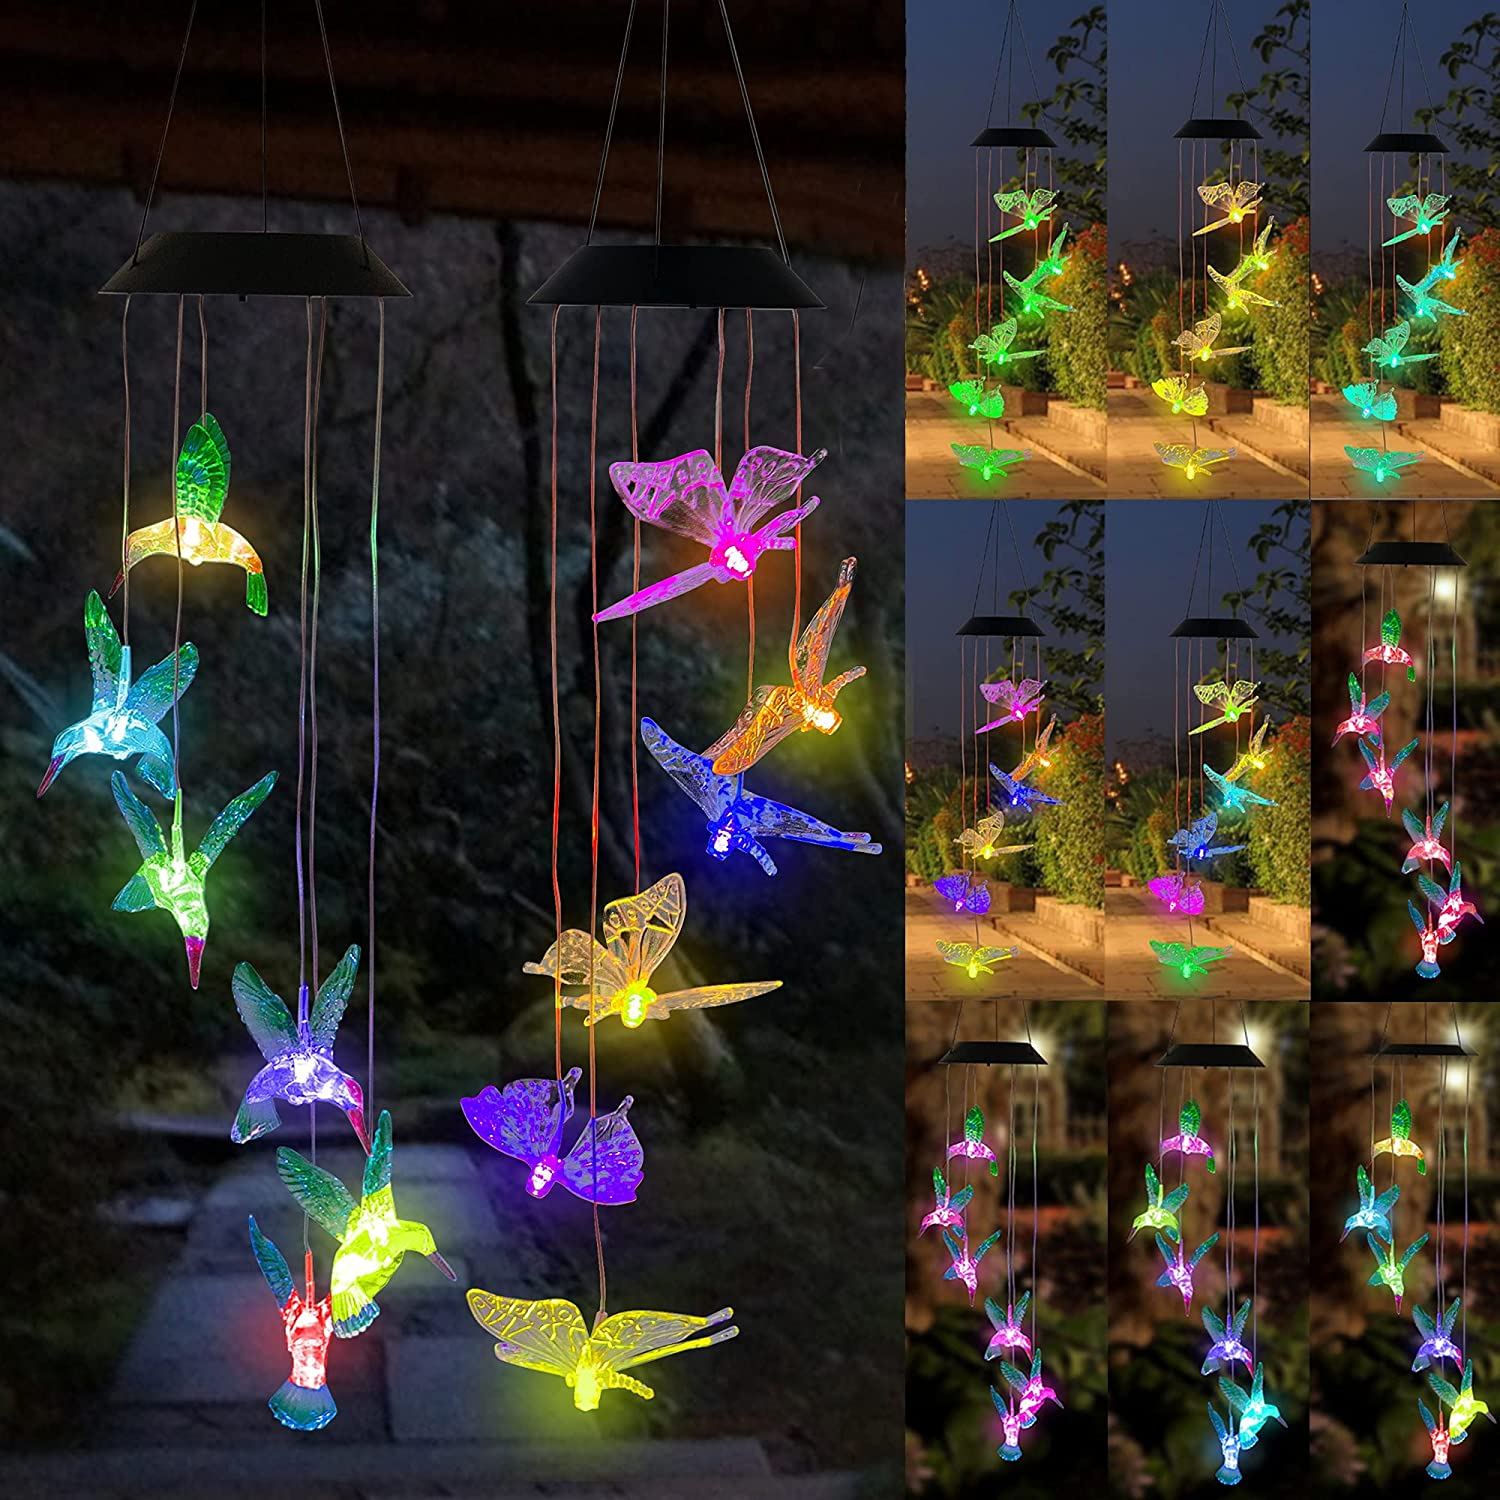 FUNPENY Solar Wind Chimes, Set of 2 LED Solar Hanging Butterfly & Hummingbird Lights Outdoor Waterproof Mobile Wind Chime for Home, Garden, Yard Decoration, Gift for Class